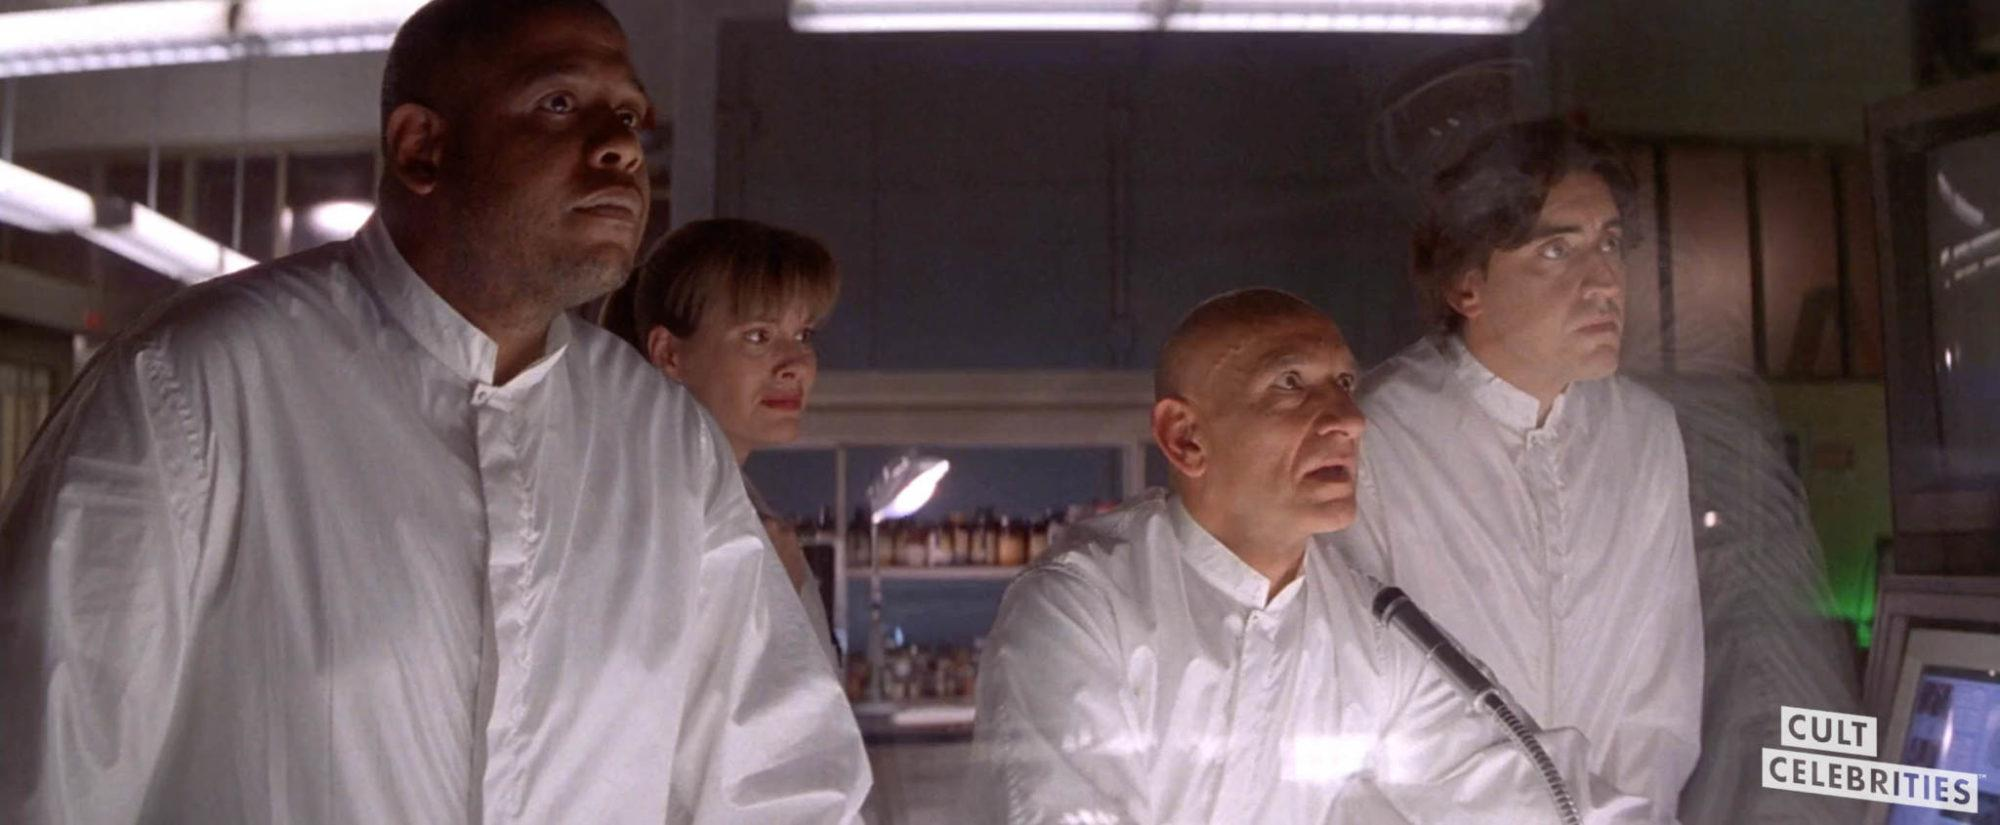 Ben Kingsley, Forest Whitaker and Alfred Molina in Species (1995)